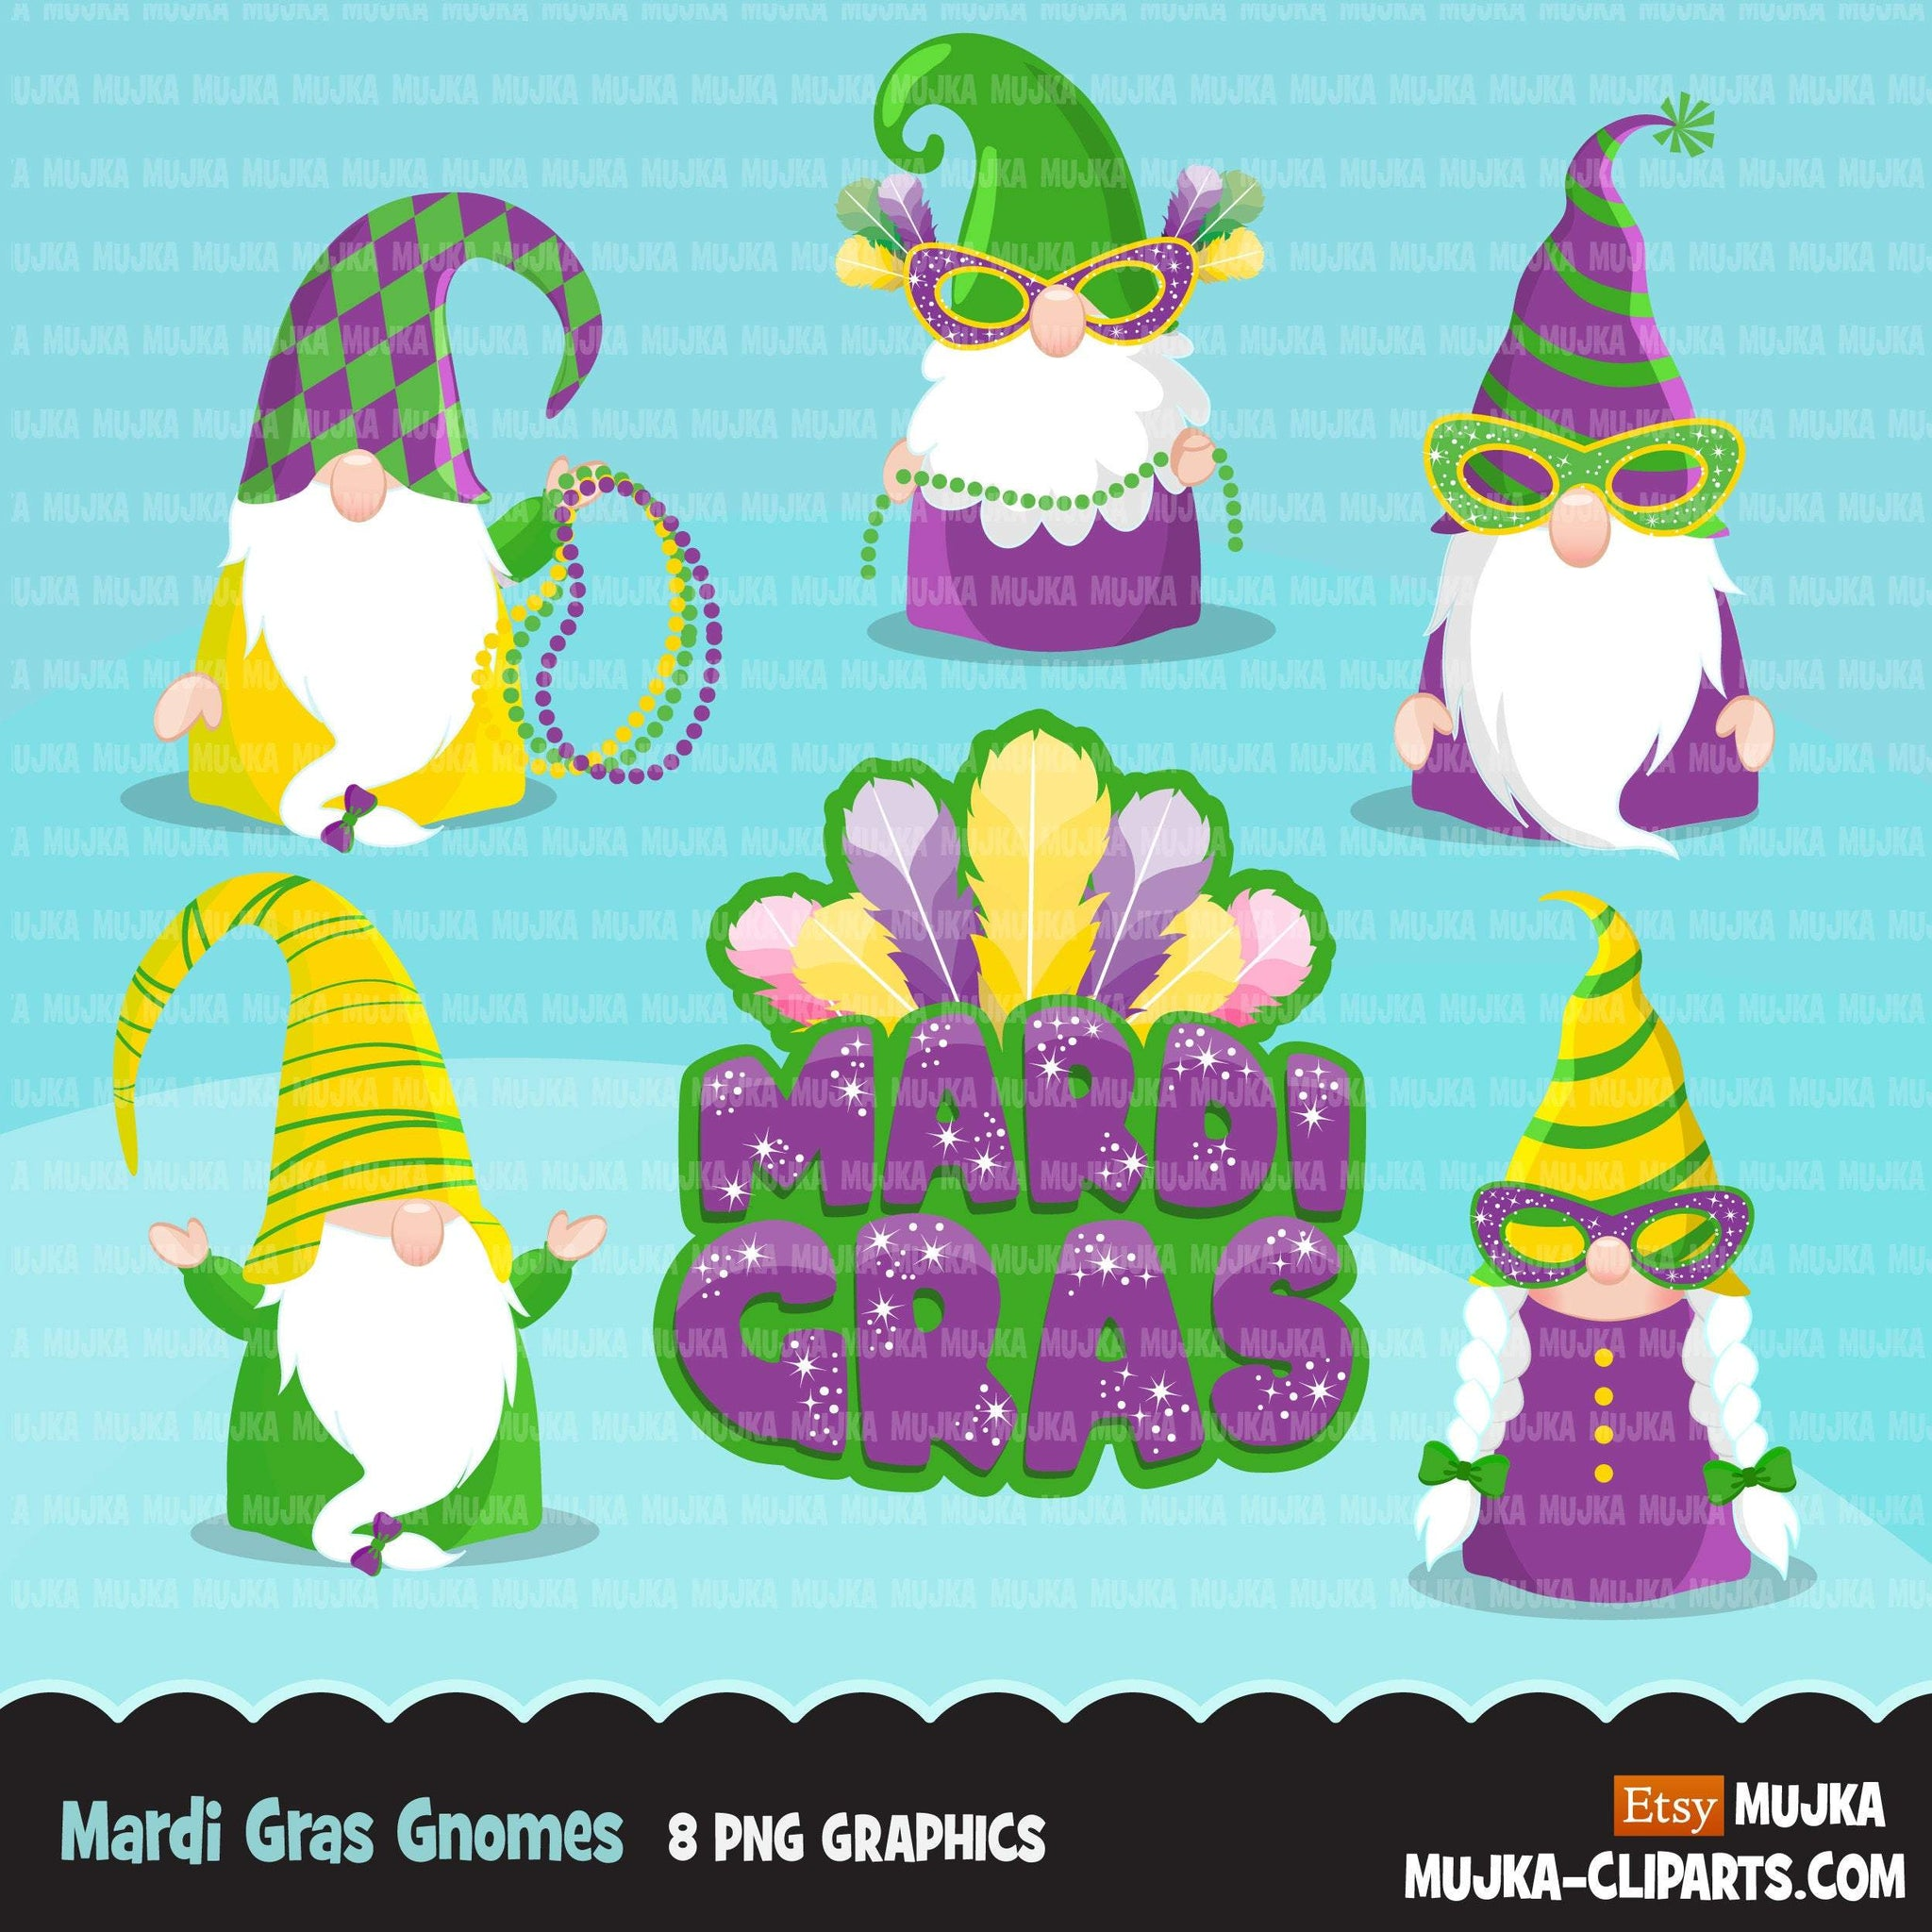 Gnomes Clipart Bundle, Easter, St Patrick's Day, School, Valentines, birthday, baby shower, Halloween, Christmas, Mardi Gras gnome graphics commercial use PNG clip art